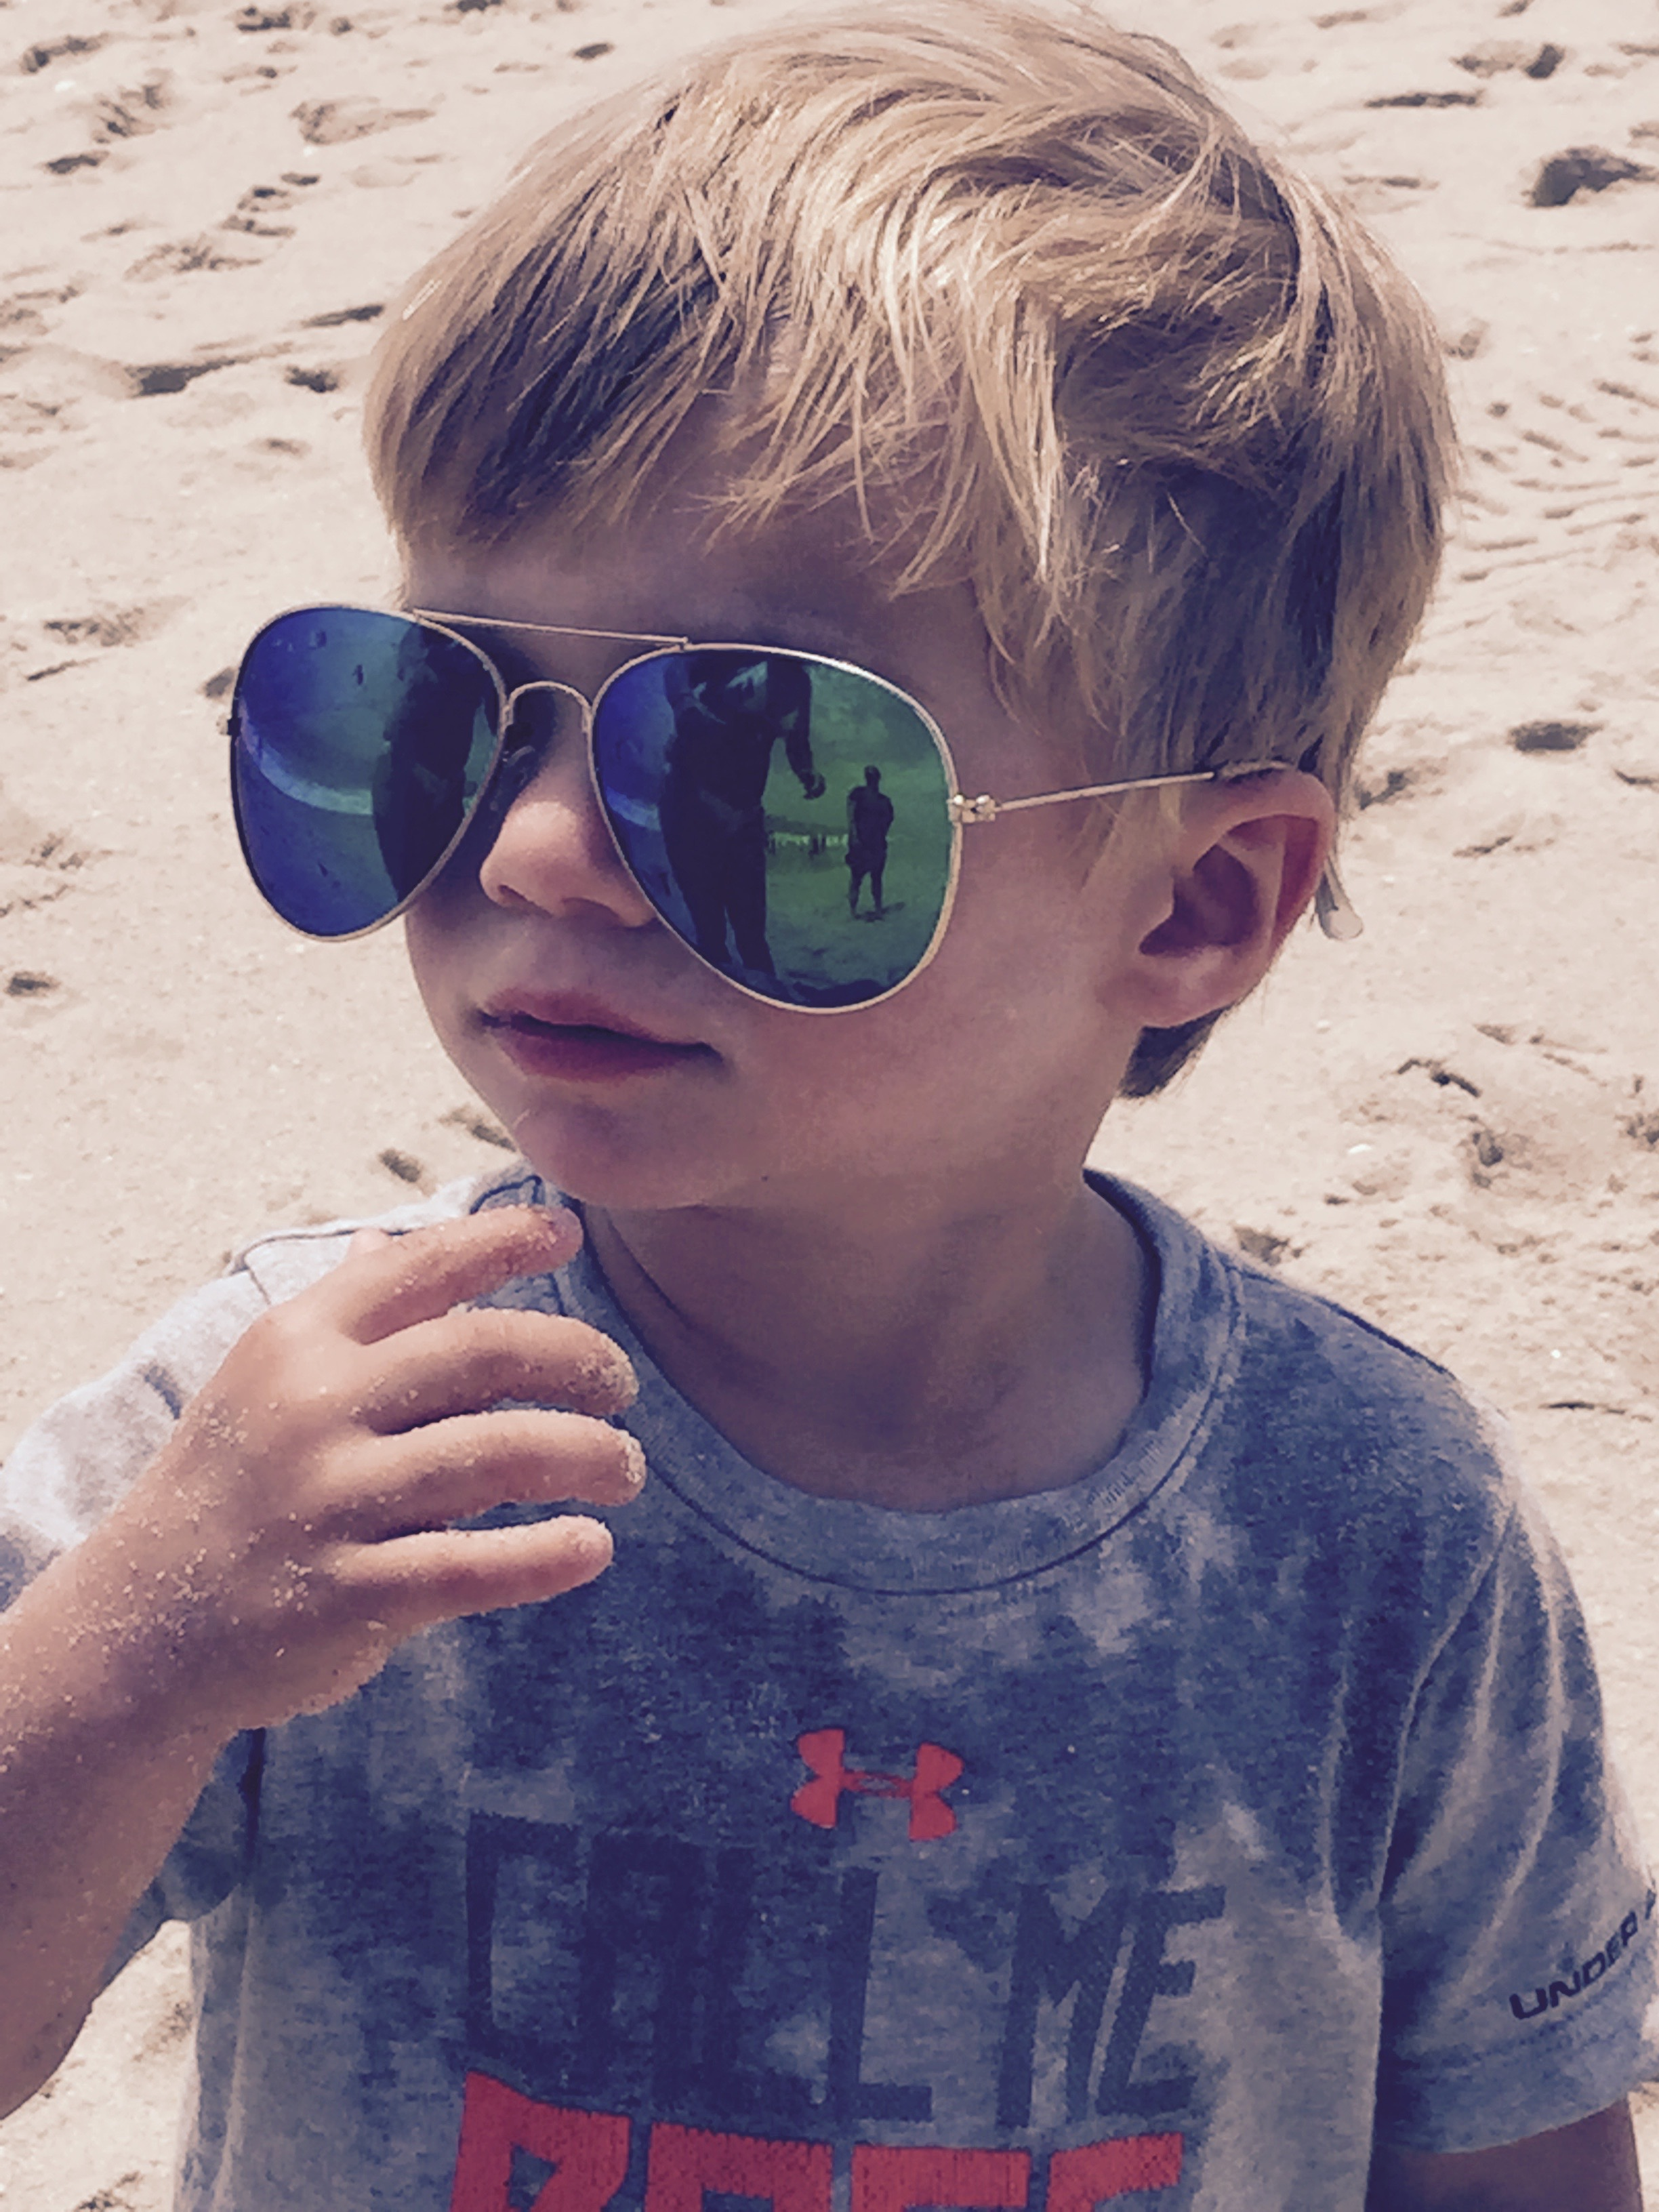 This is my son at the beach in New Jersey